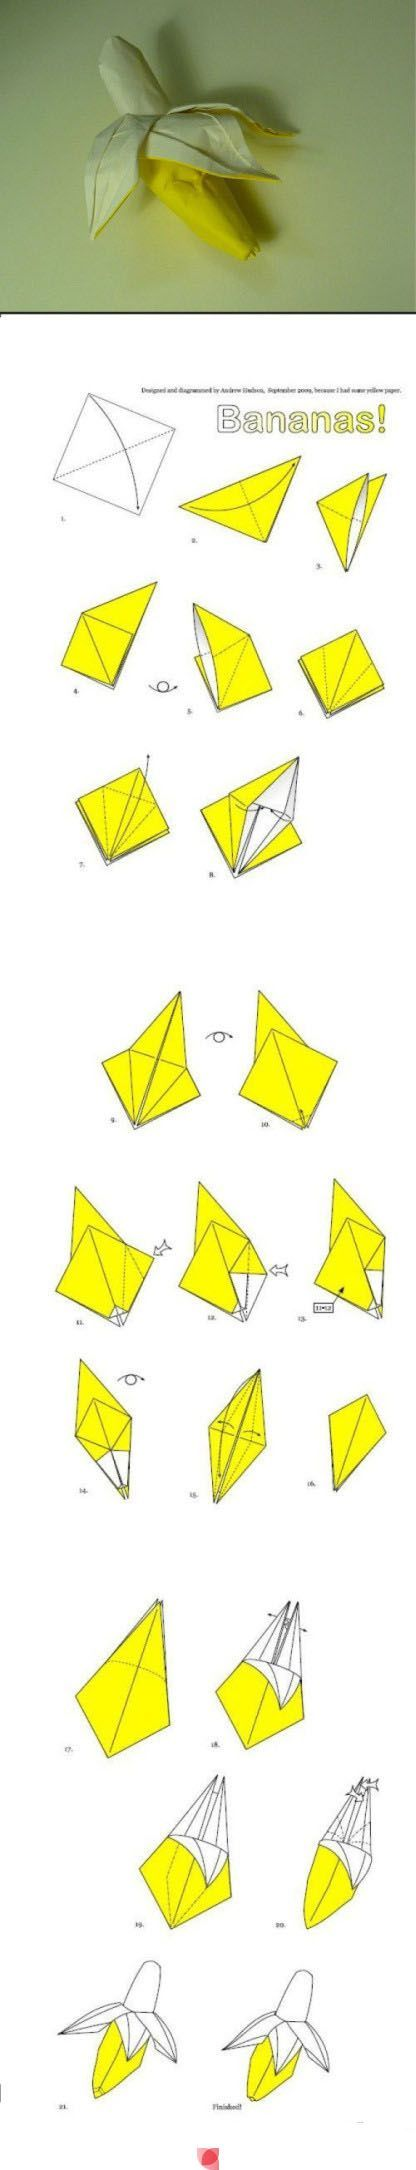 best images about star warsorigami on pinterest how to fold